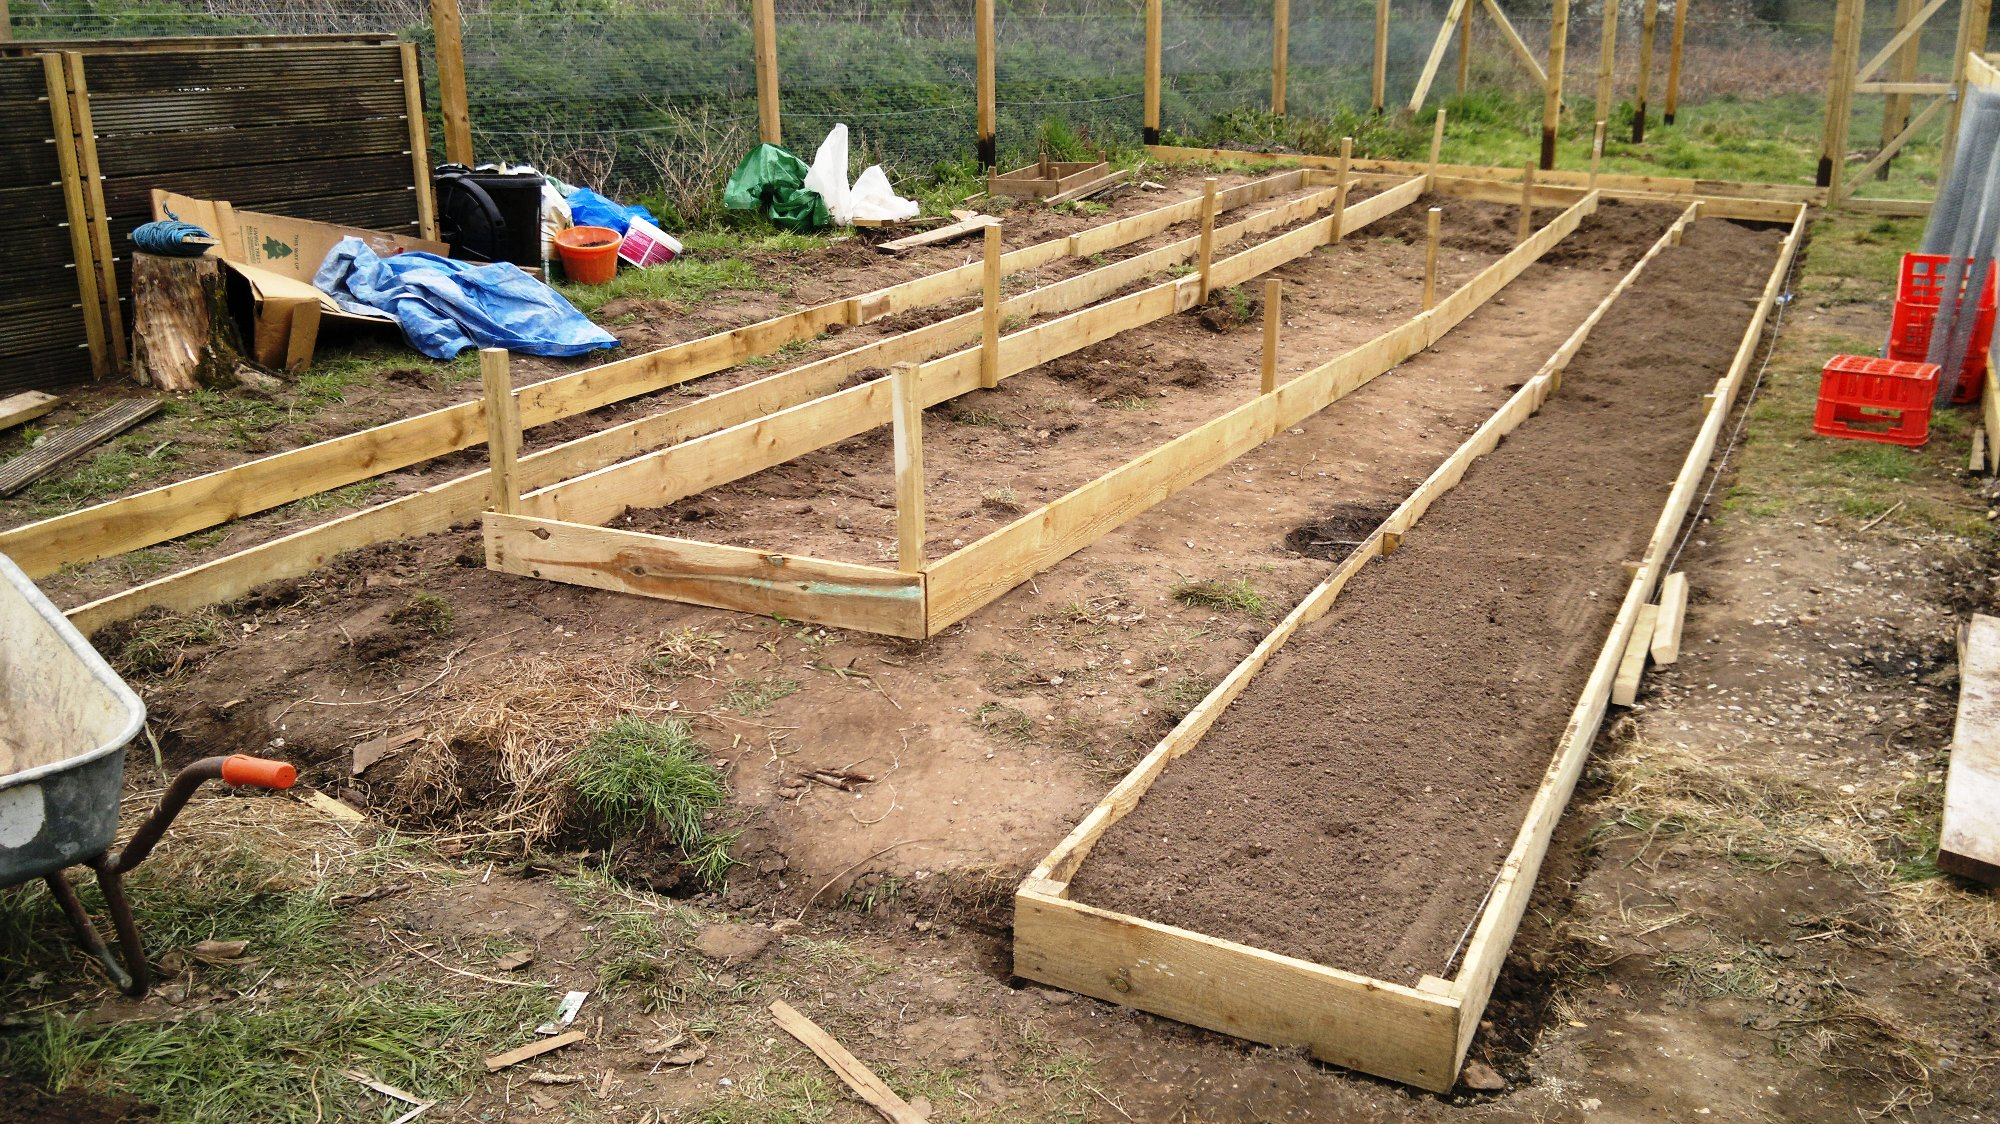 Polytunnel beds laid out